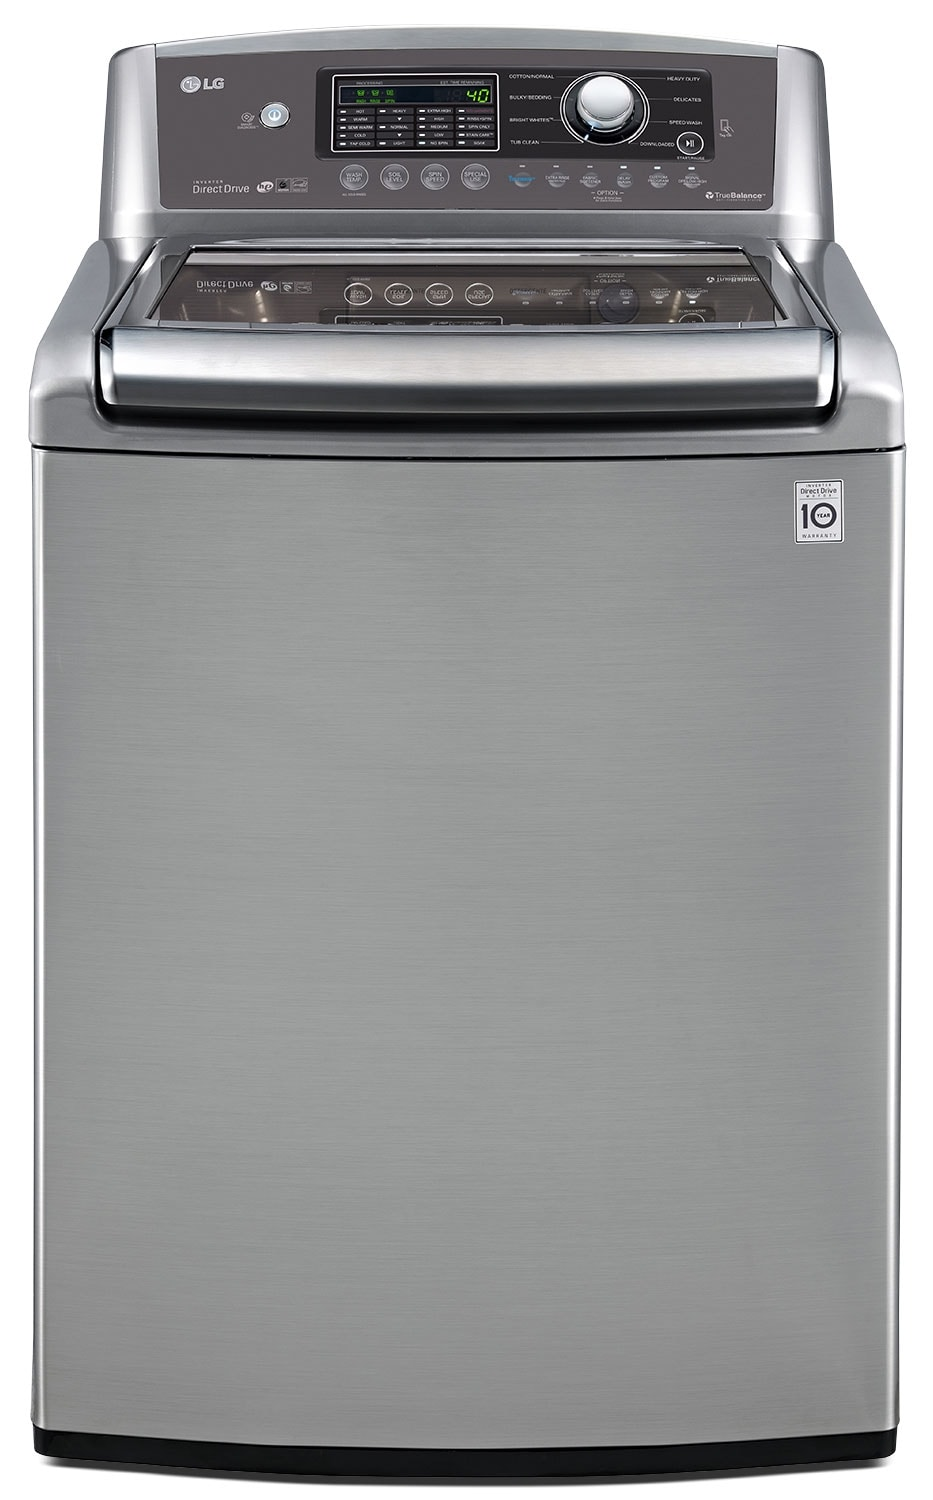 LG 5.6 Cu Ft. High-Efficiency Top-Load Washer with NFC Tag On™ - Graphite Steel